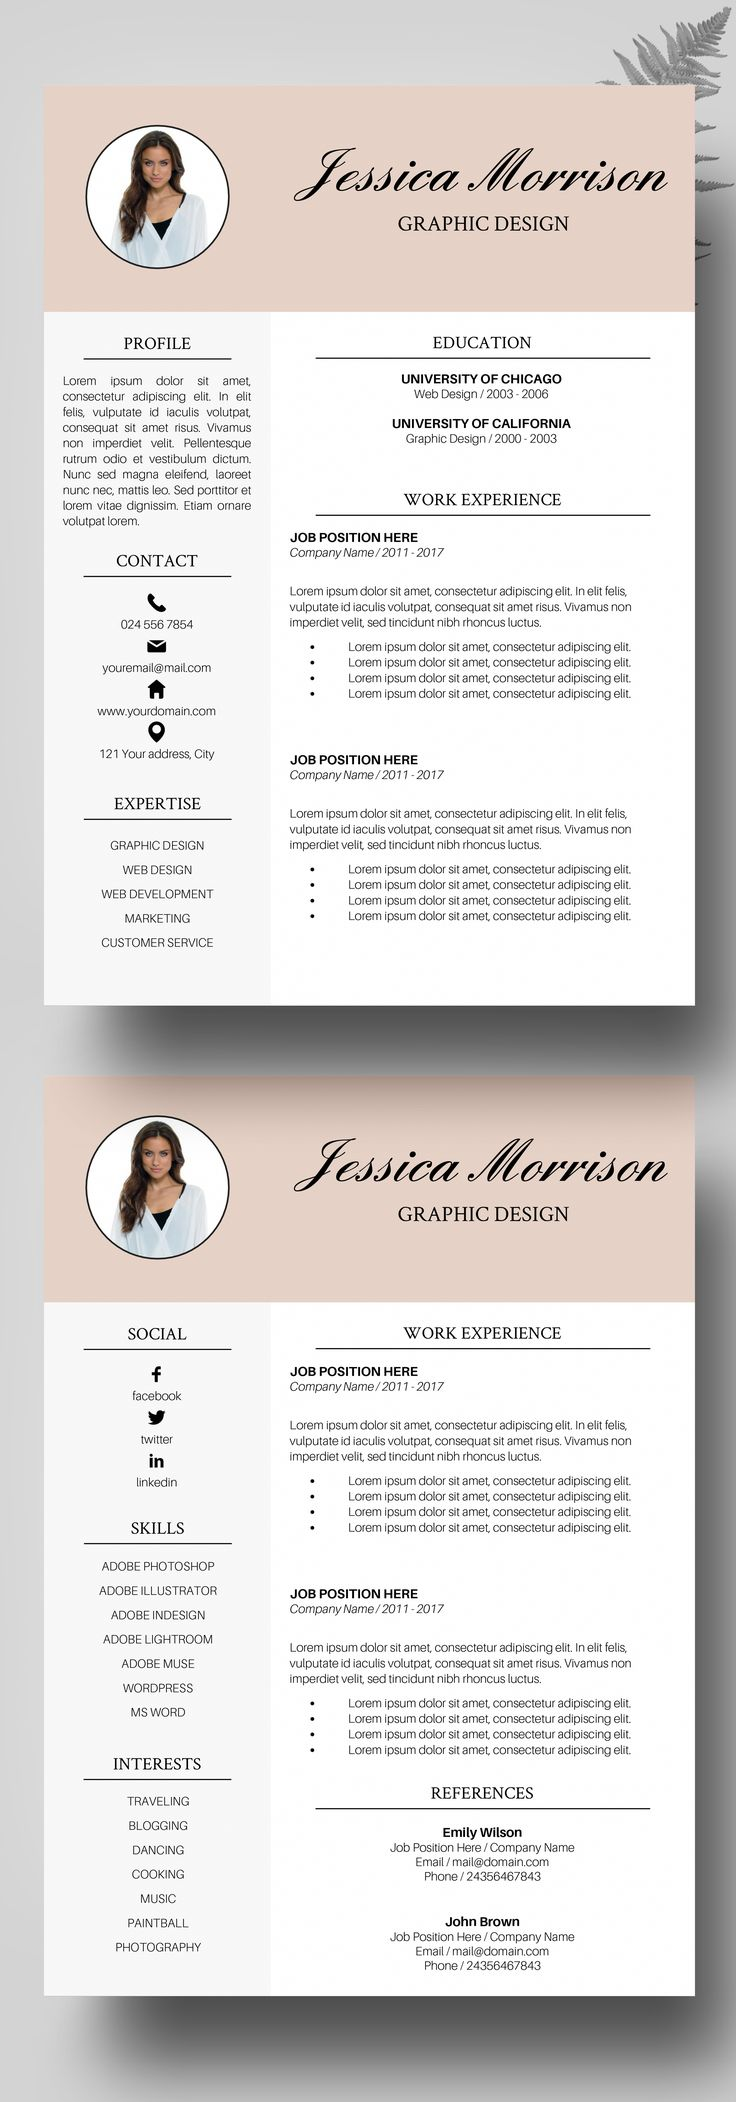 25 best creative cv template ideas on pinterest creative cv creative cv design and layout cv - Free Modern Resume Template